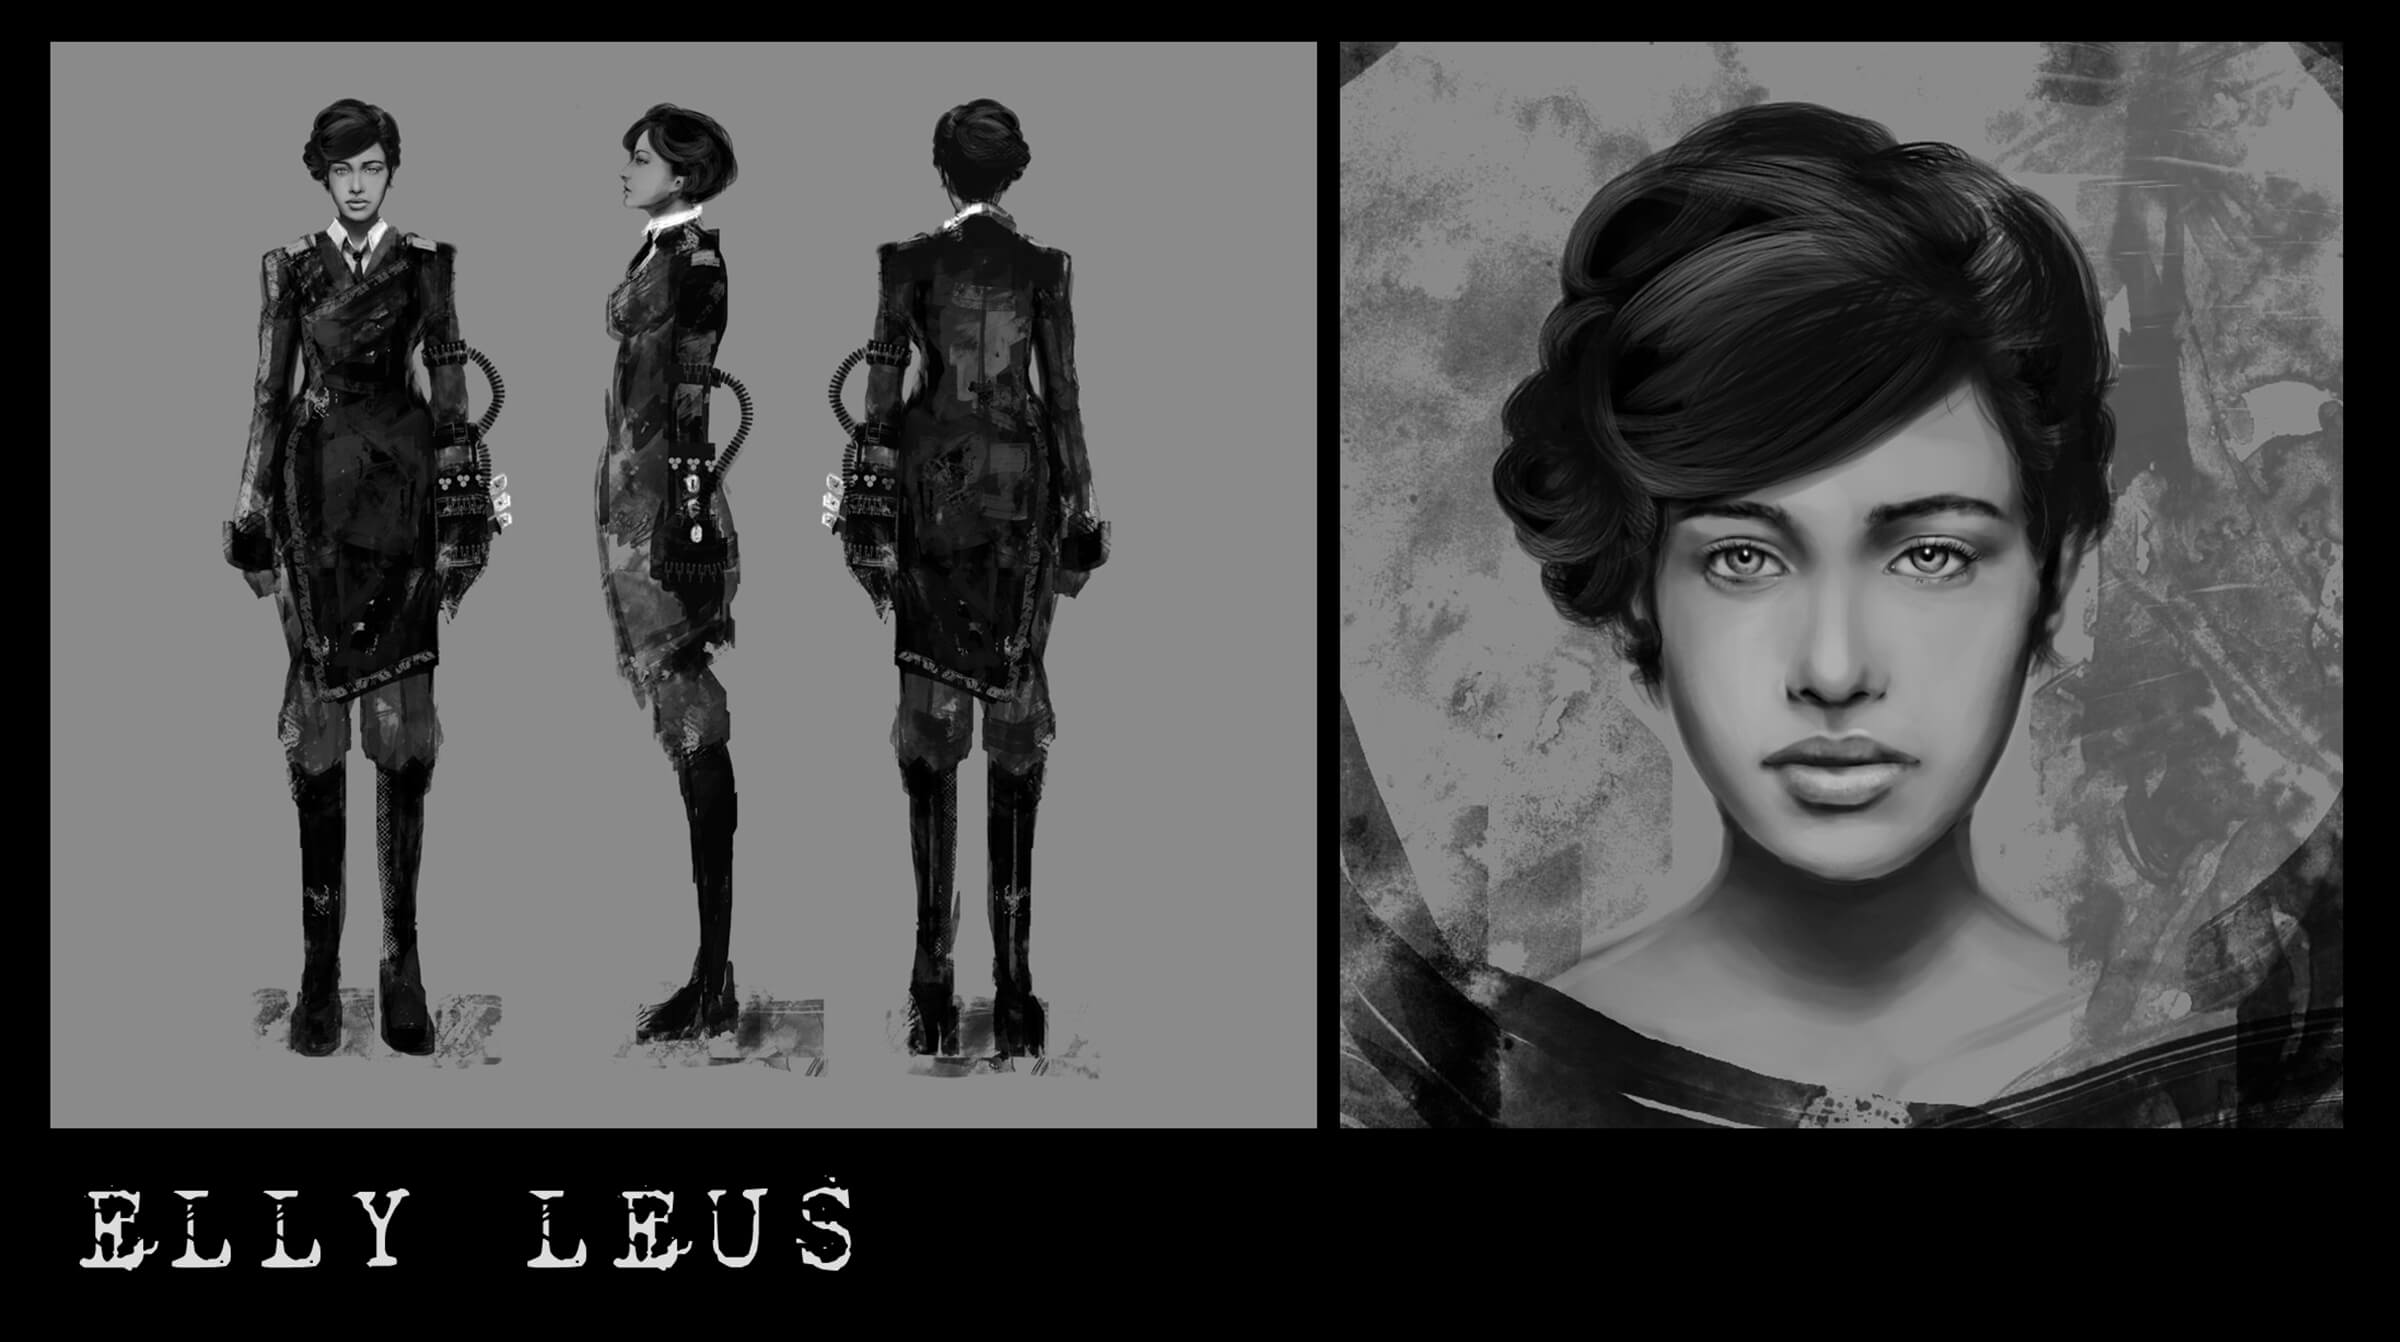 Character sketch and portrait of Elly Leus, a woman with a mid-century hairstyle and wielding a cyberpunk arm attachment.